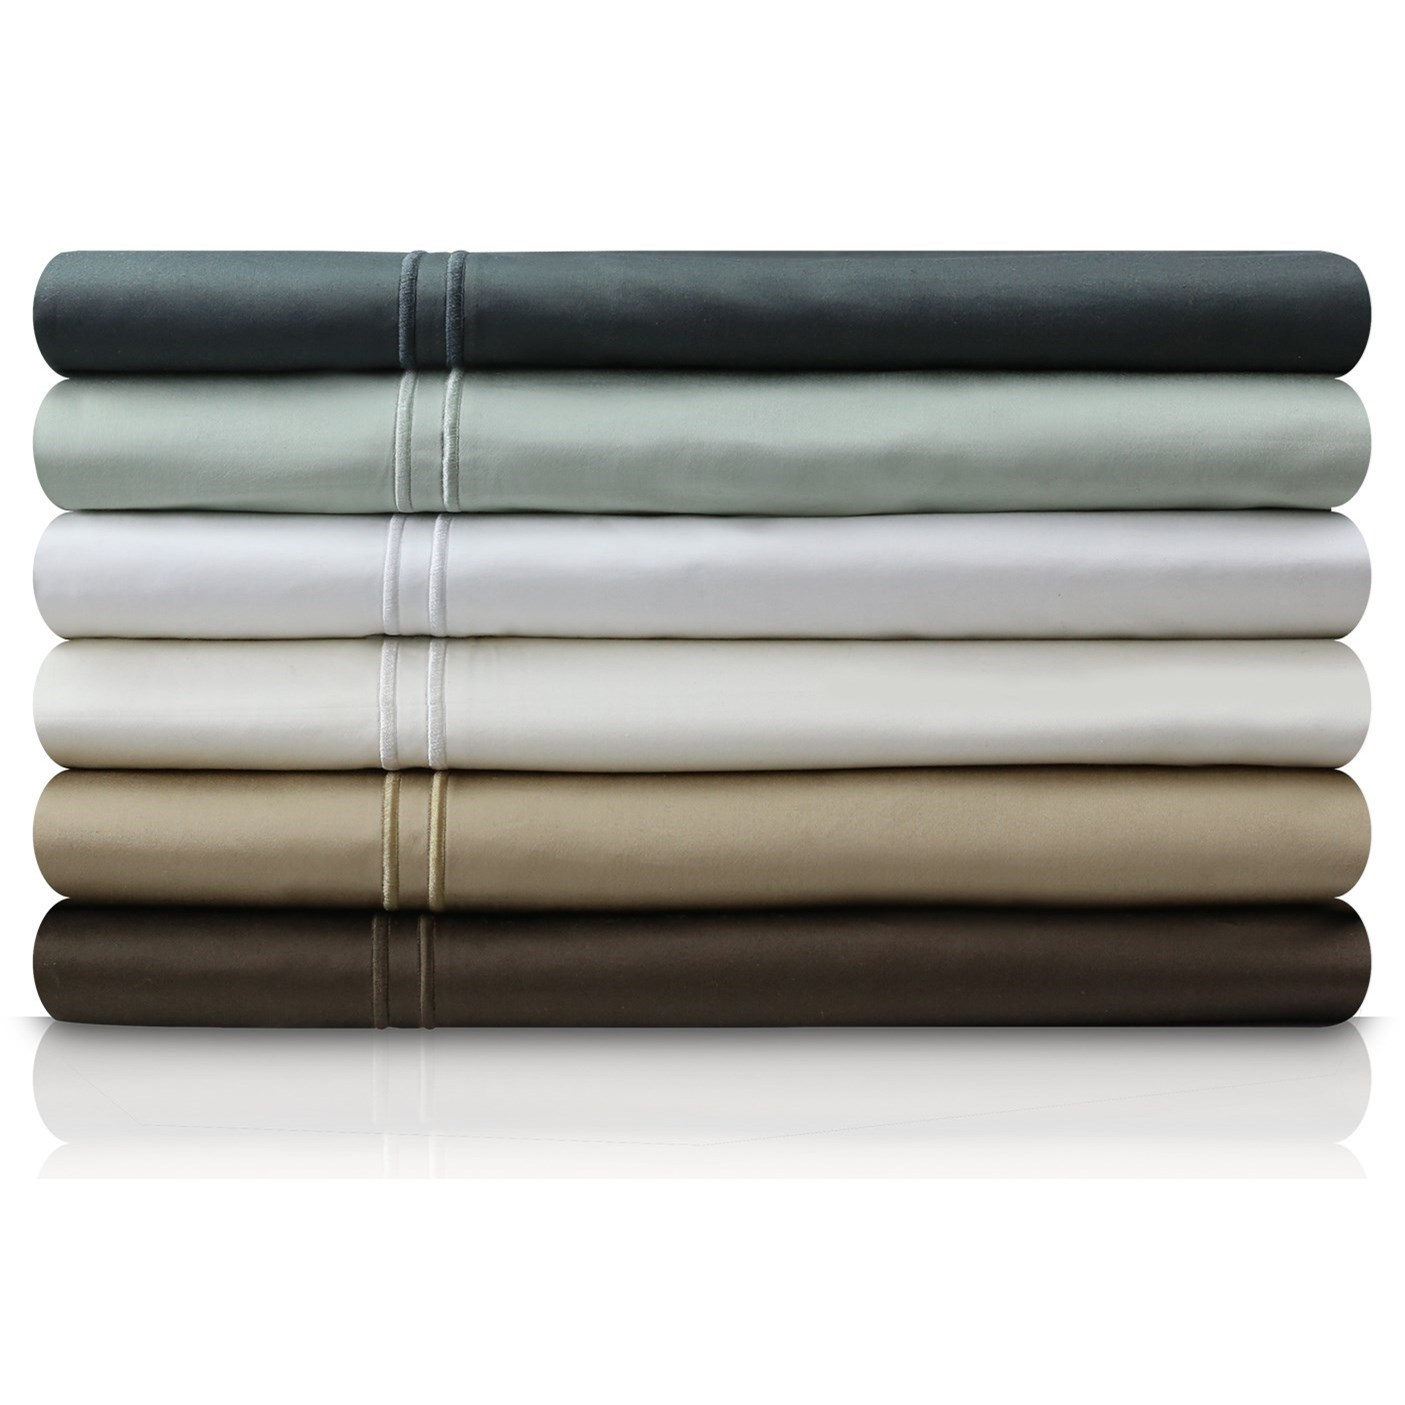 Malouf Egyptian Cotton Queen 600 TC Egyptian Cotton Sheet Set - Item Number: MA06QQCHSS